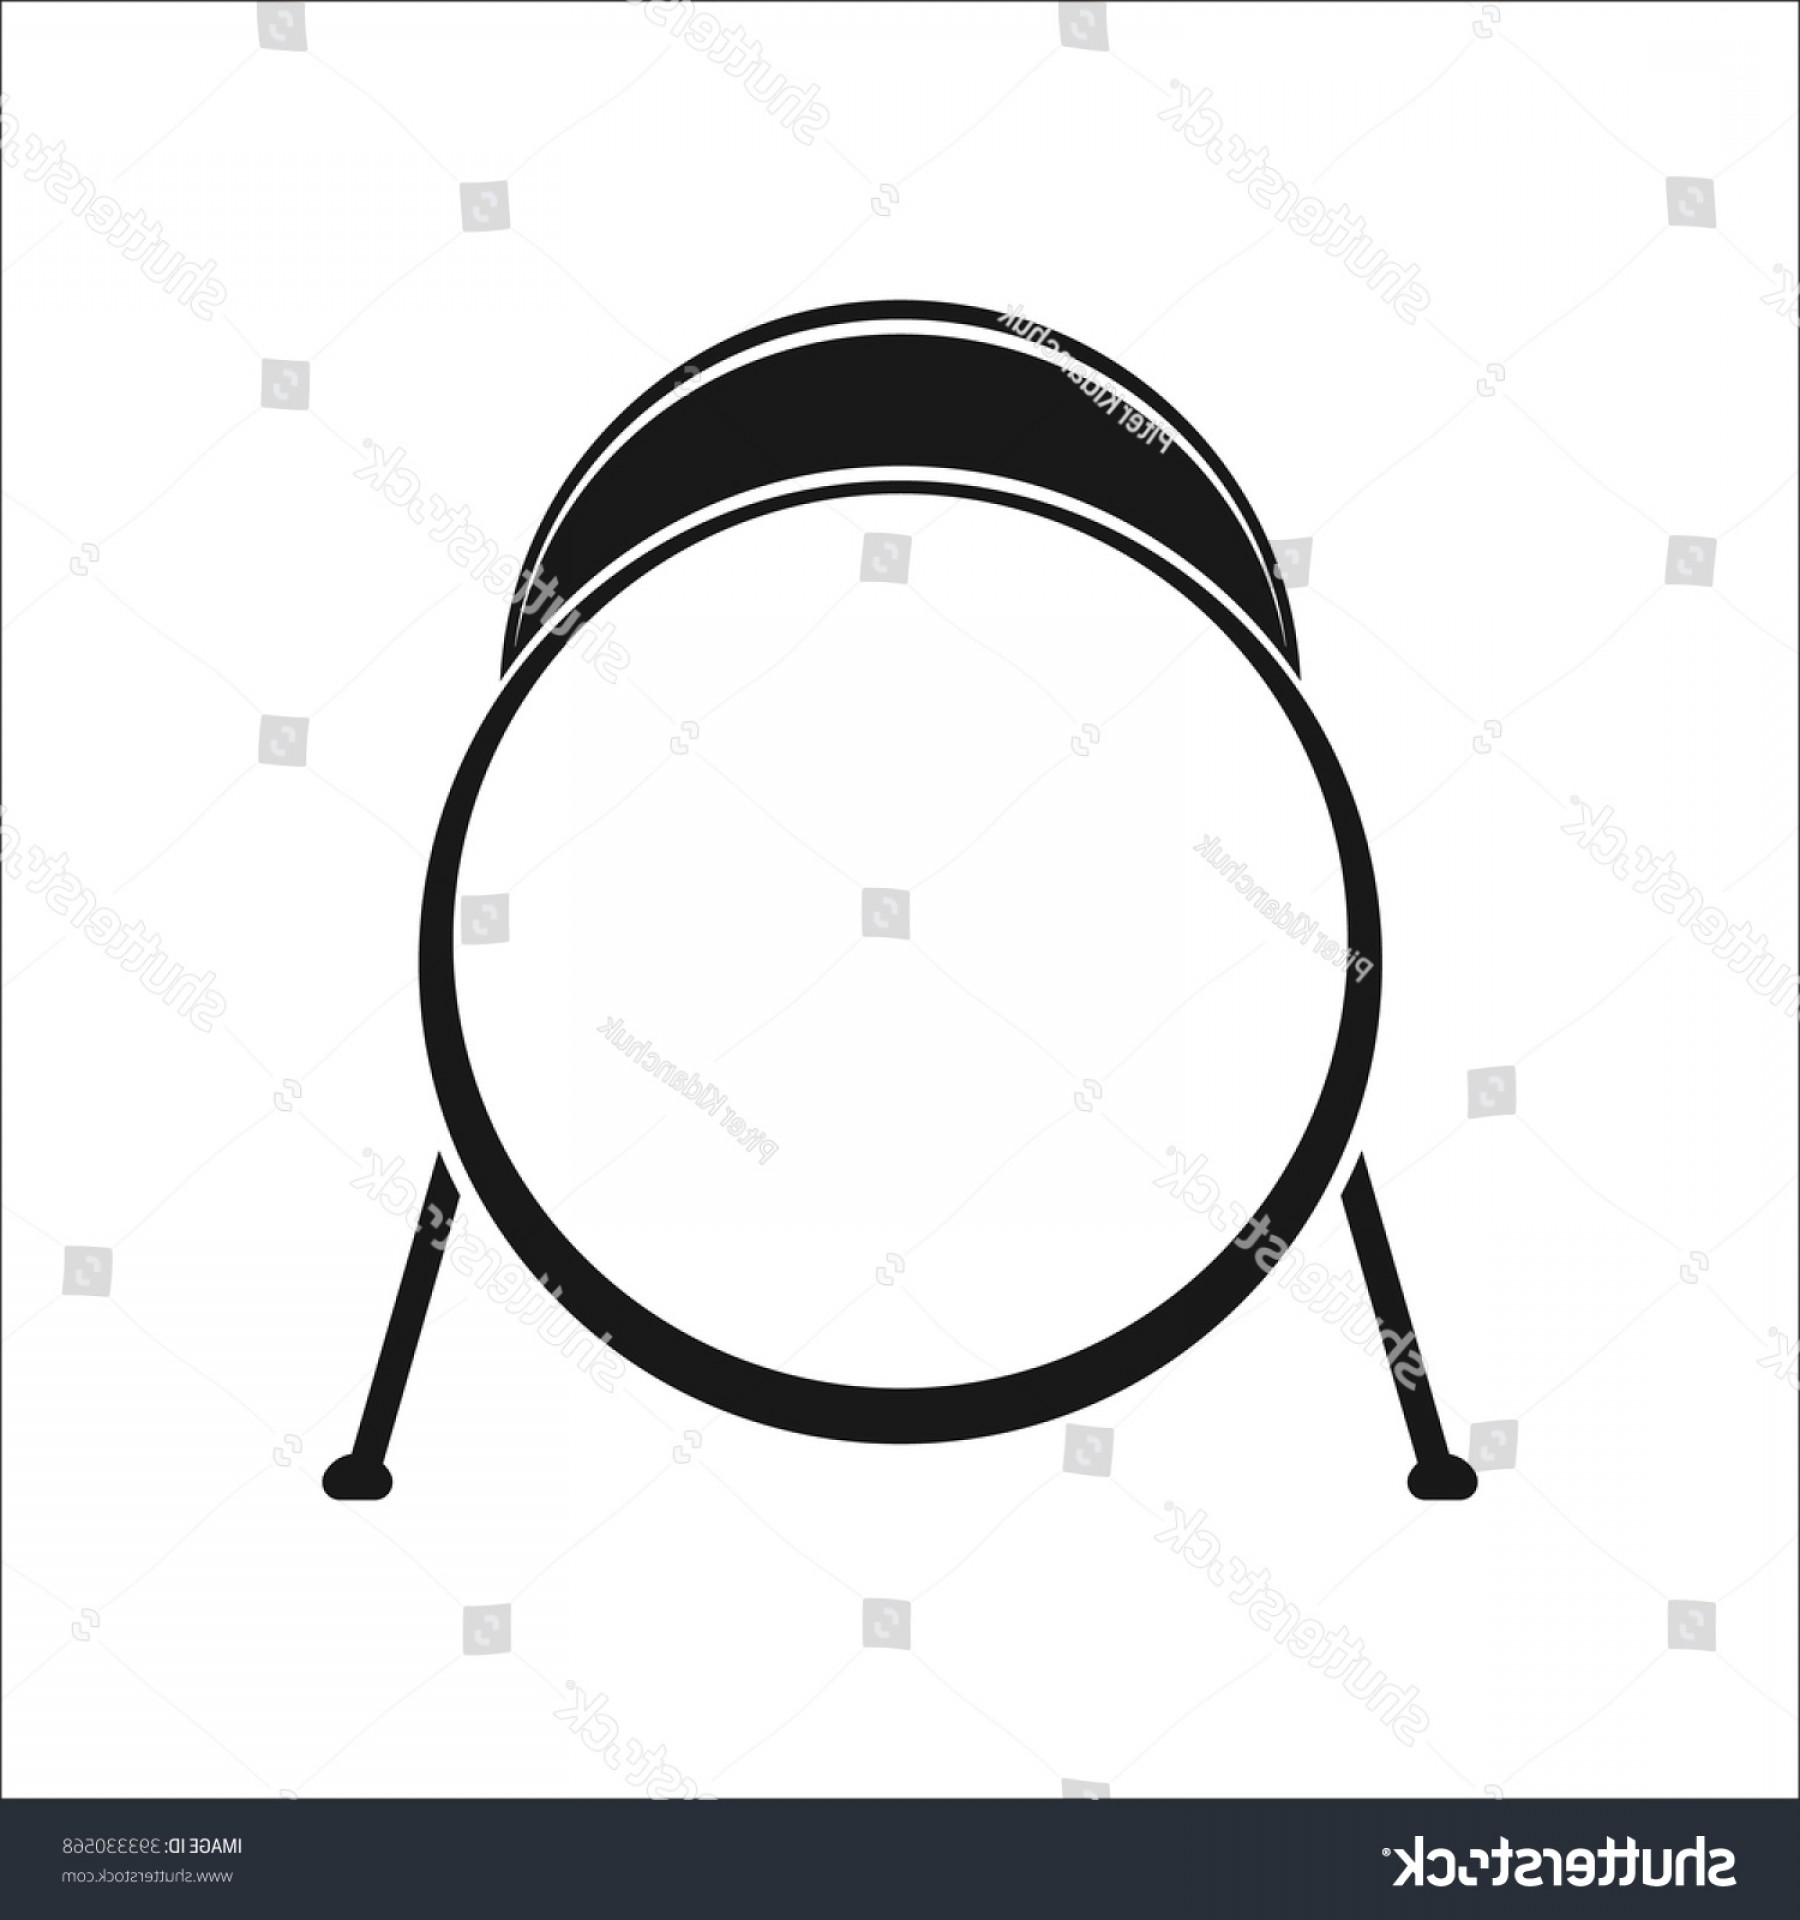 Kick Drum Vector: Kick Drum Simple Icon On White